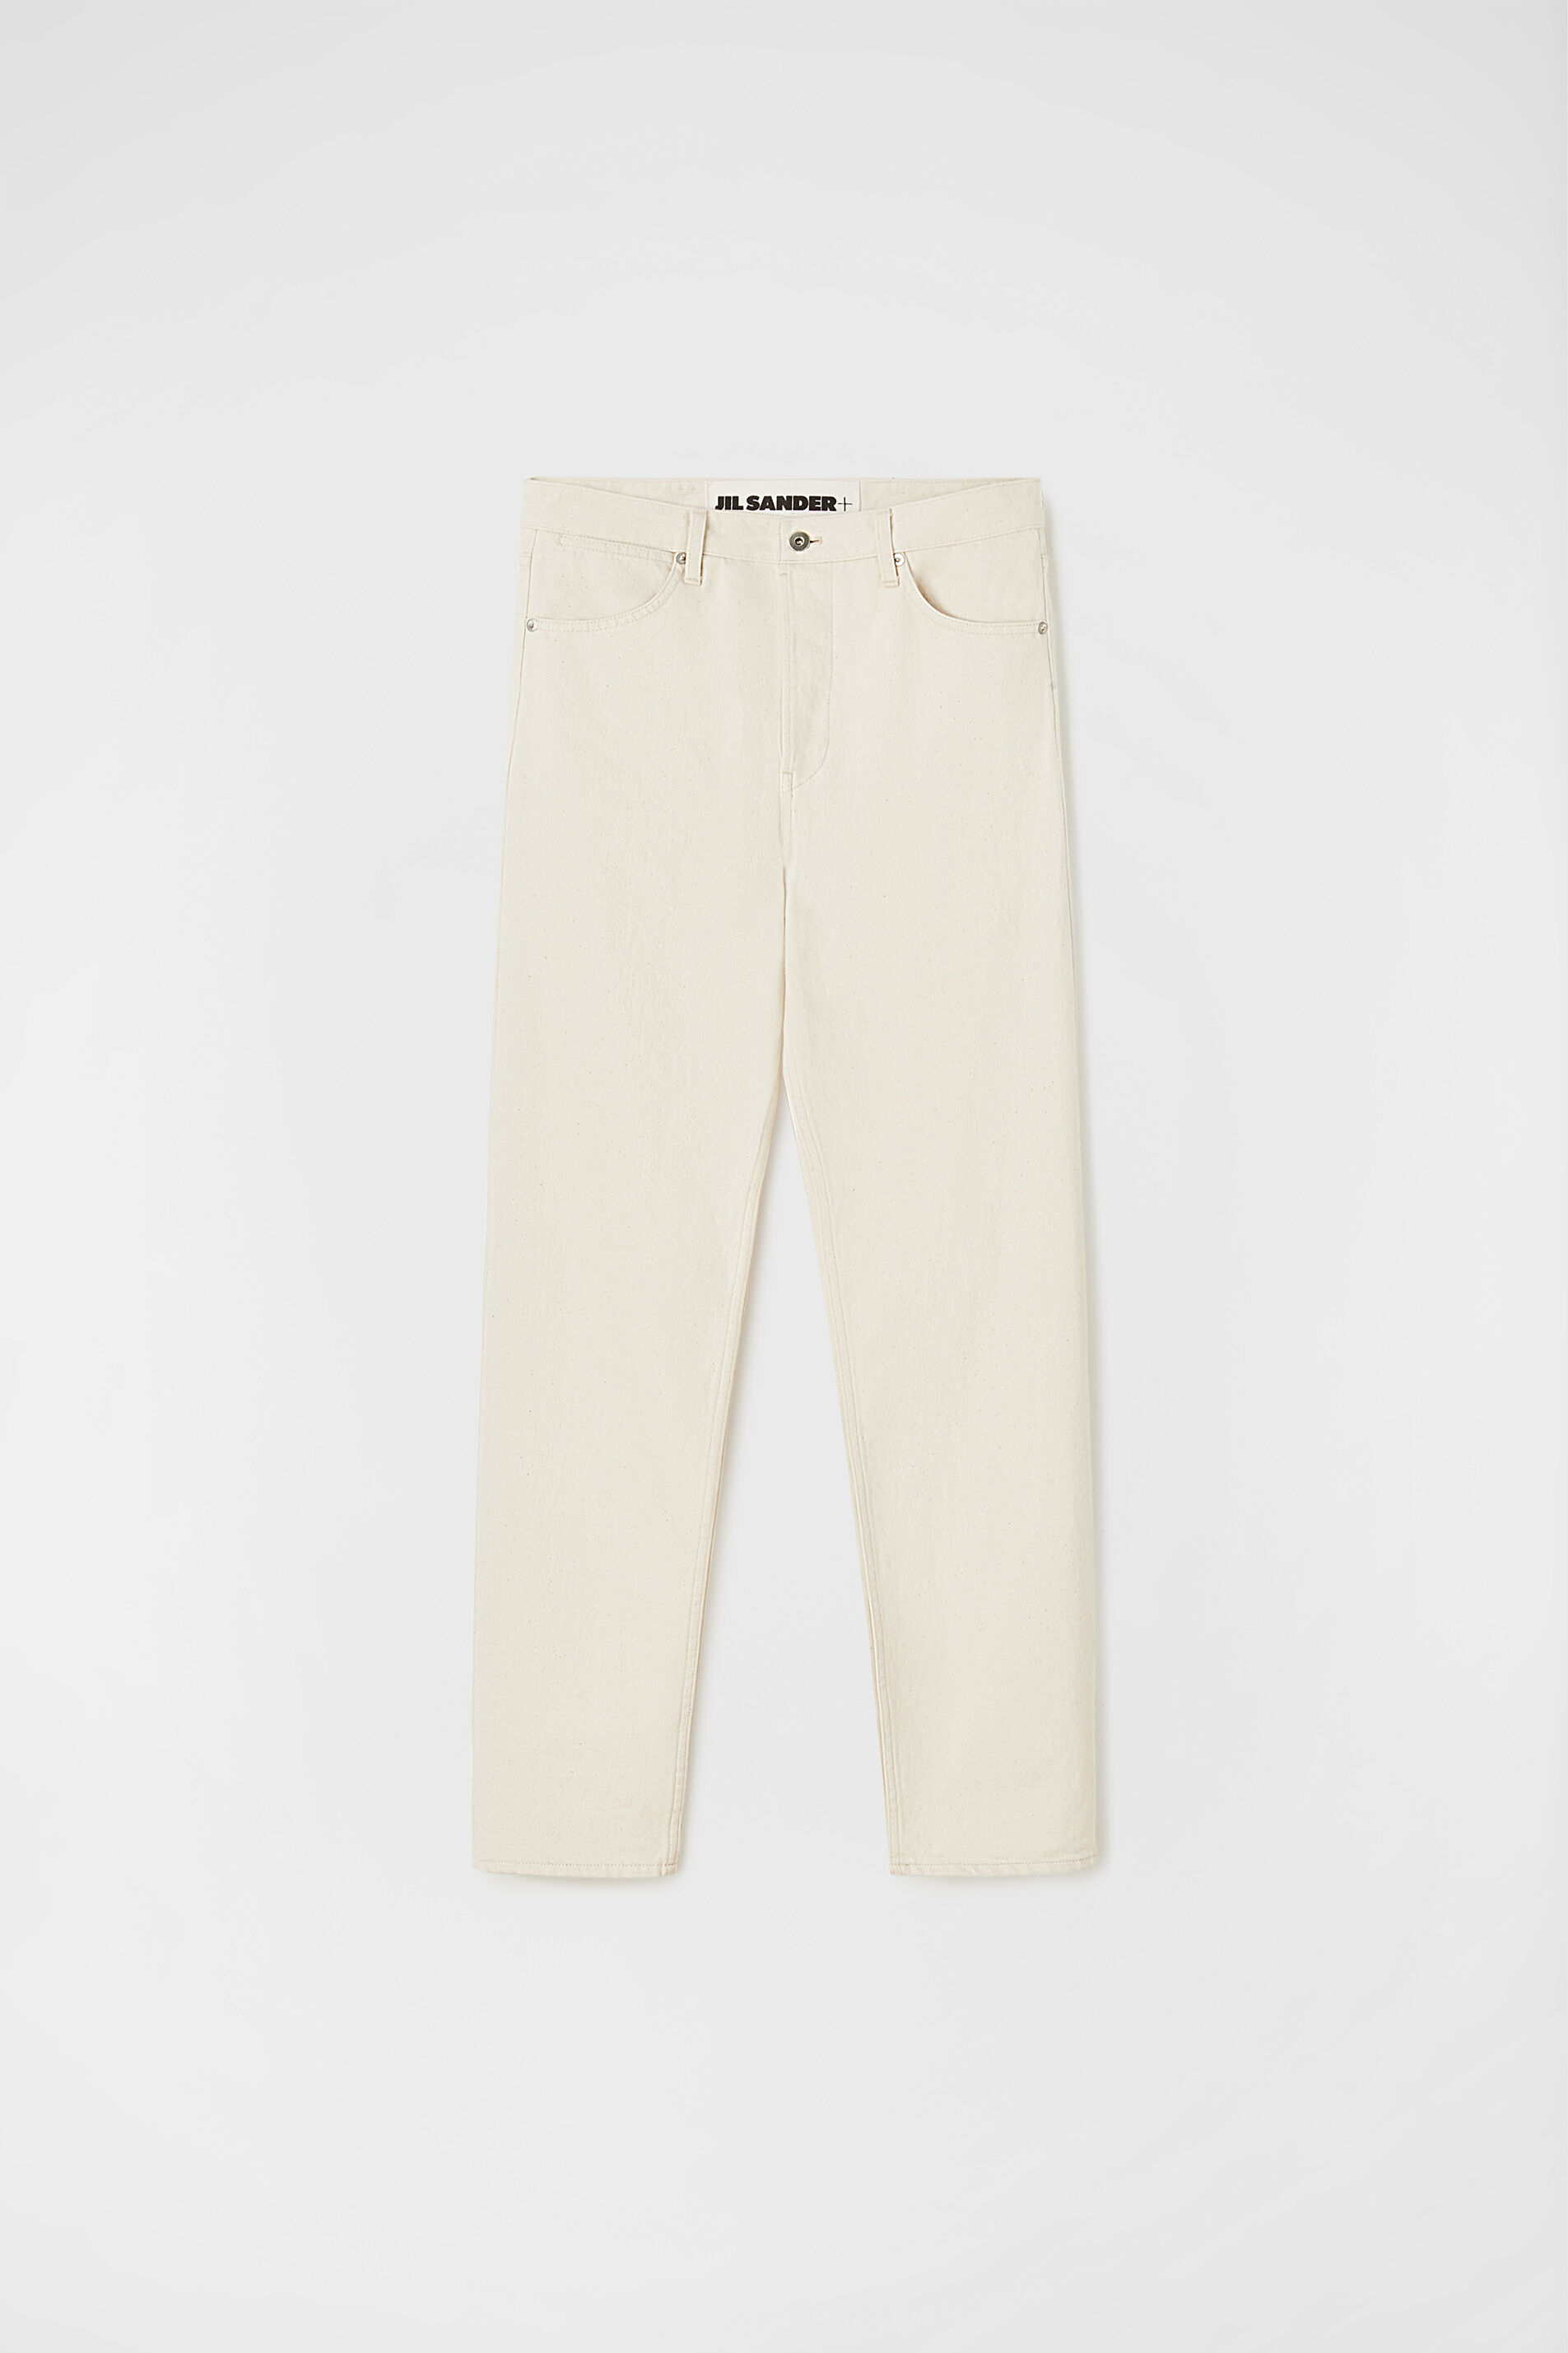 Regular Jeans, beige, large